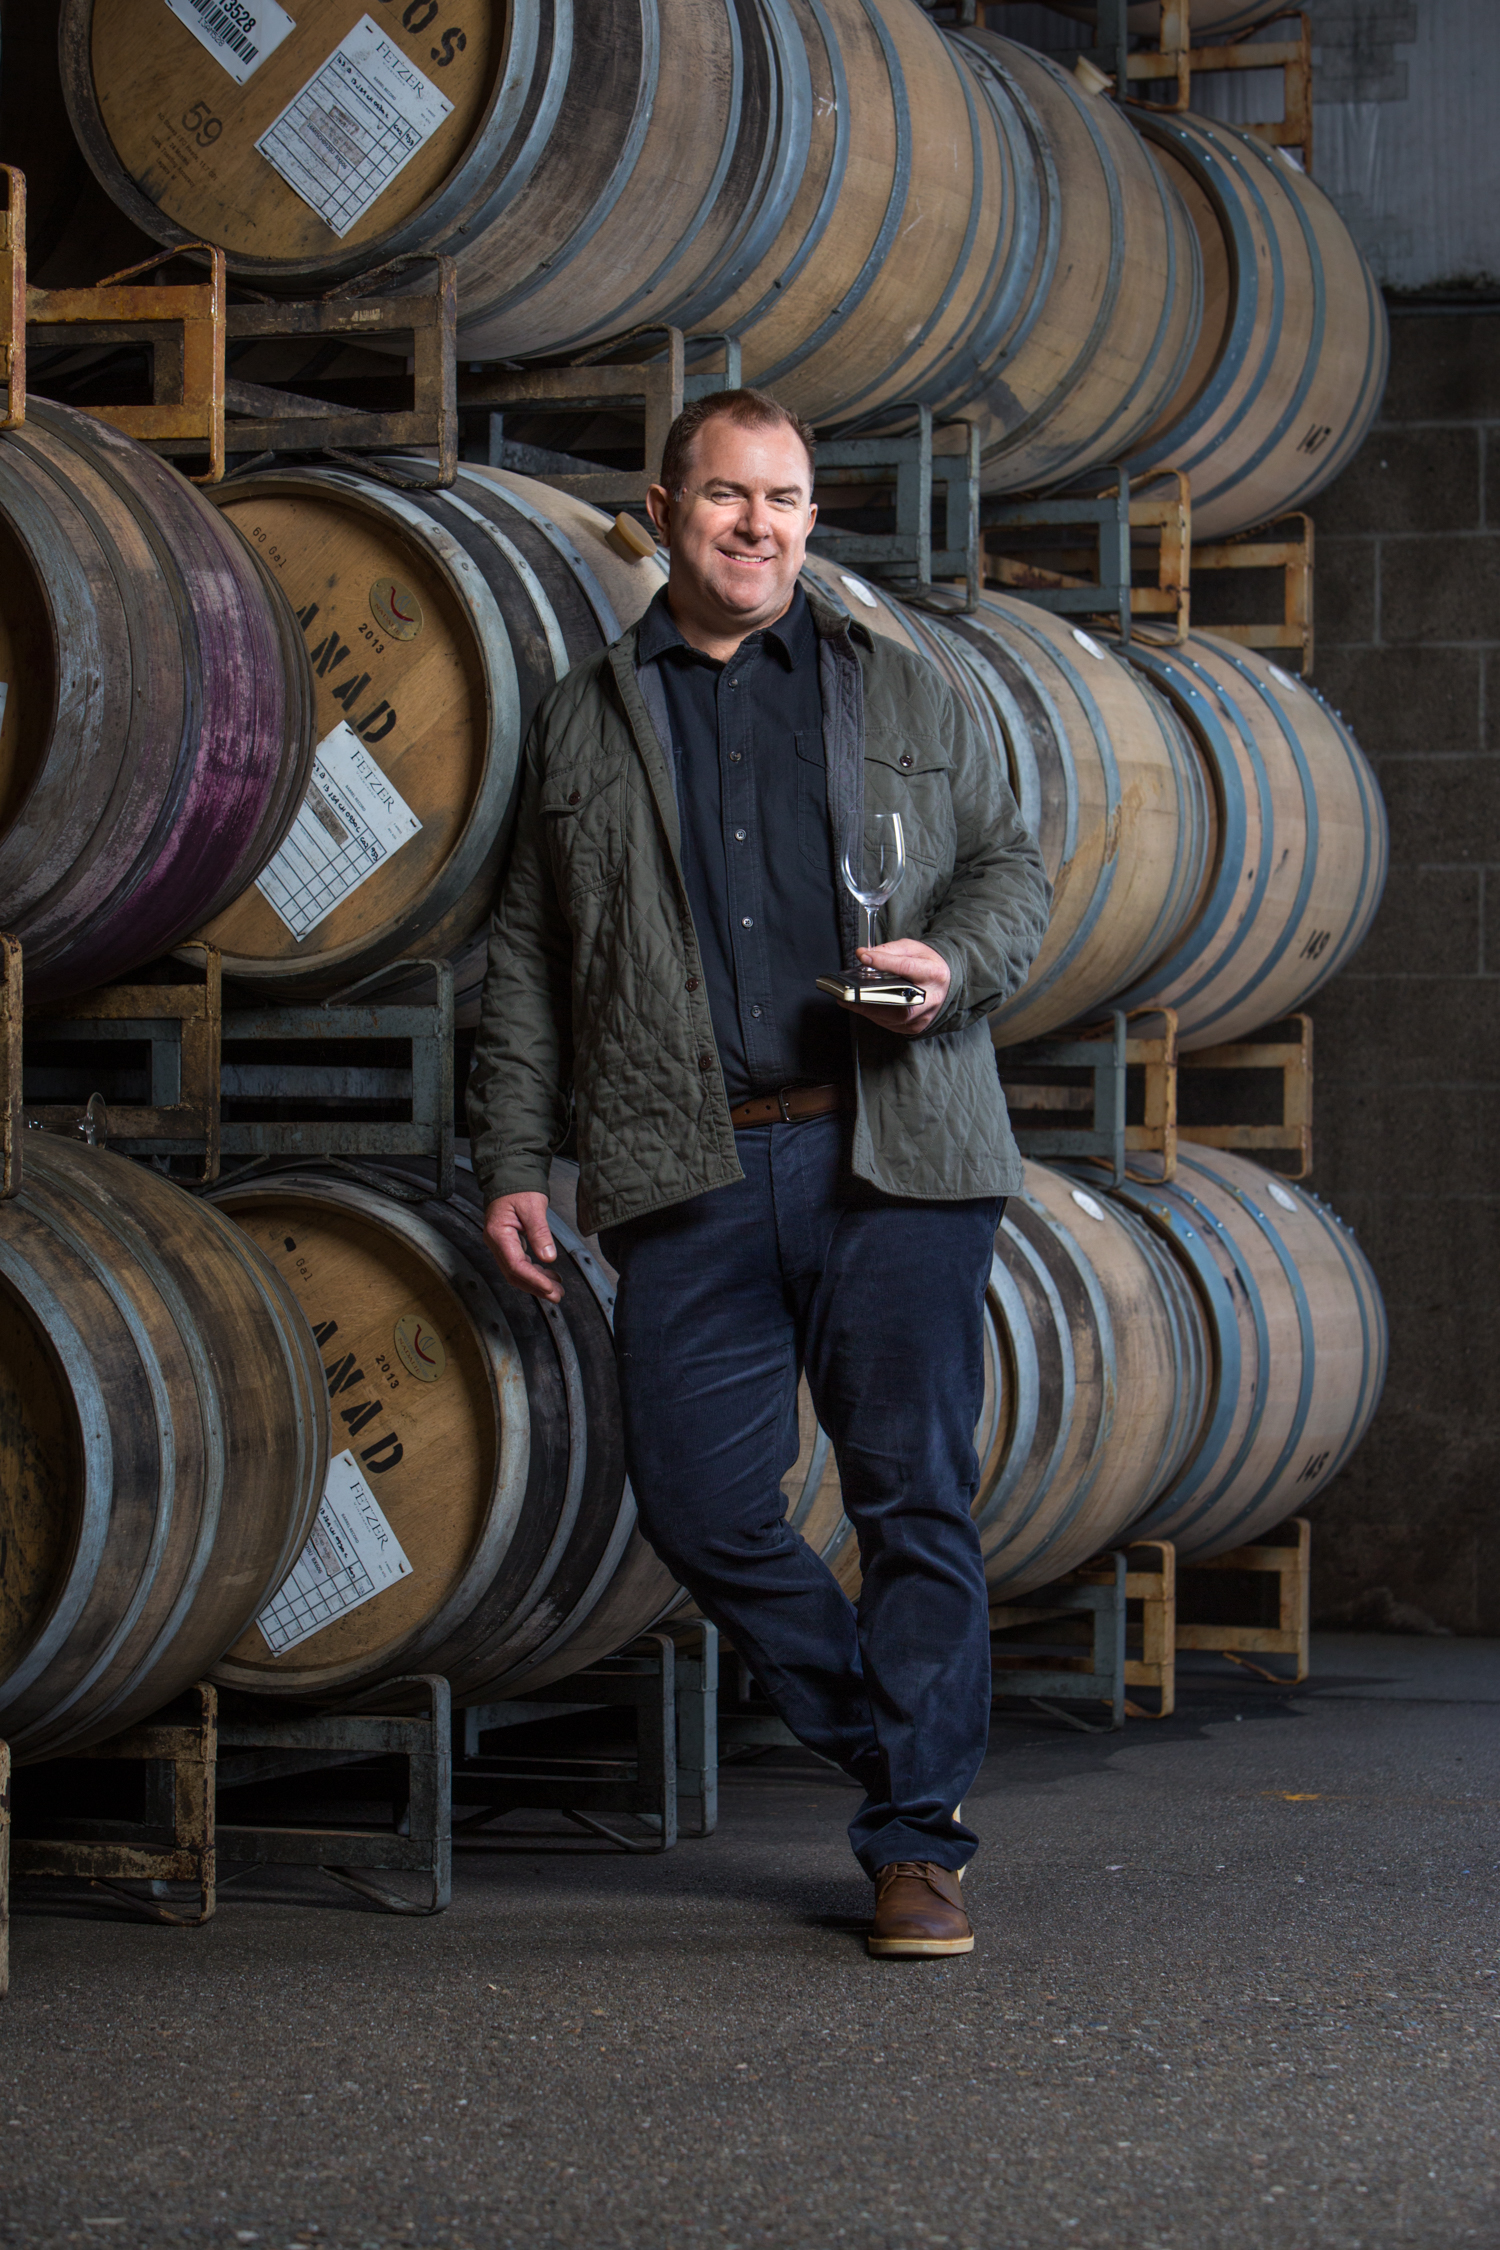 Winemaker Portrait for Fetzer Winery by Sonoma Bottle